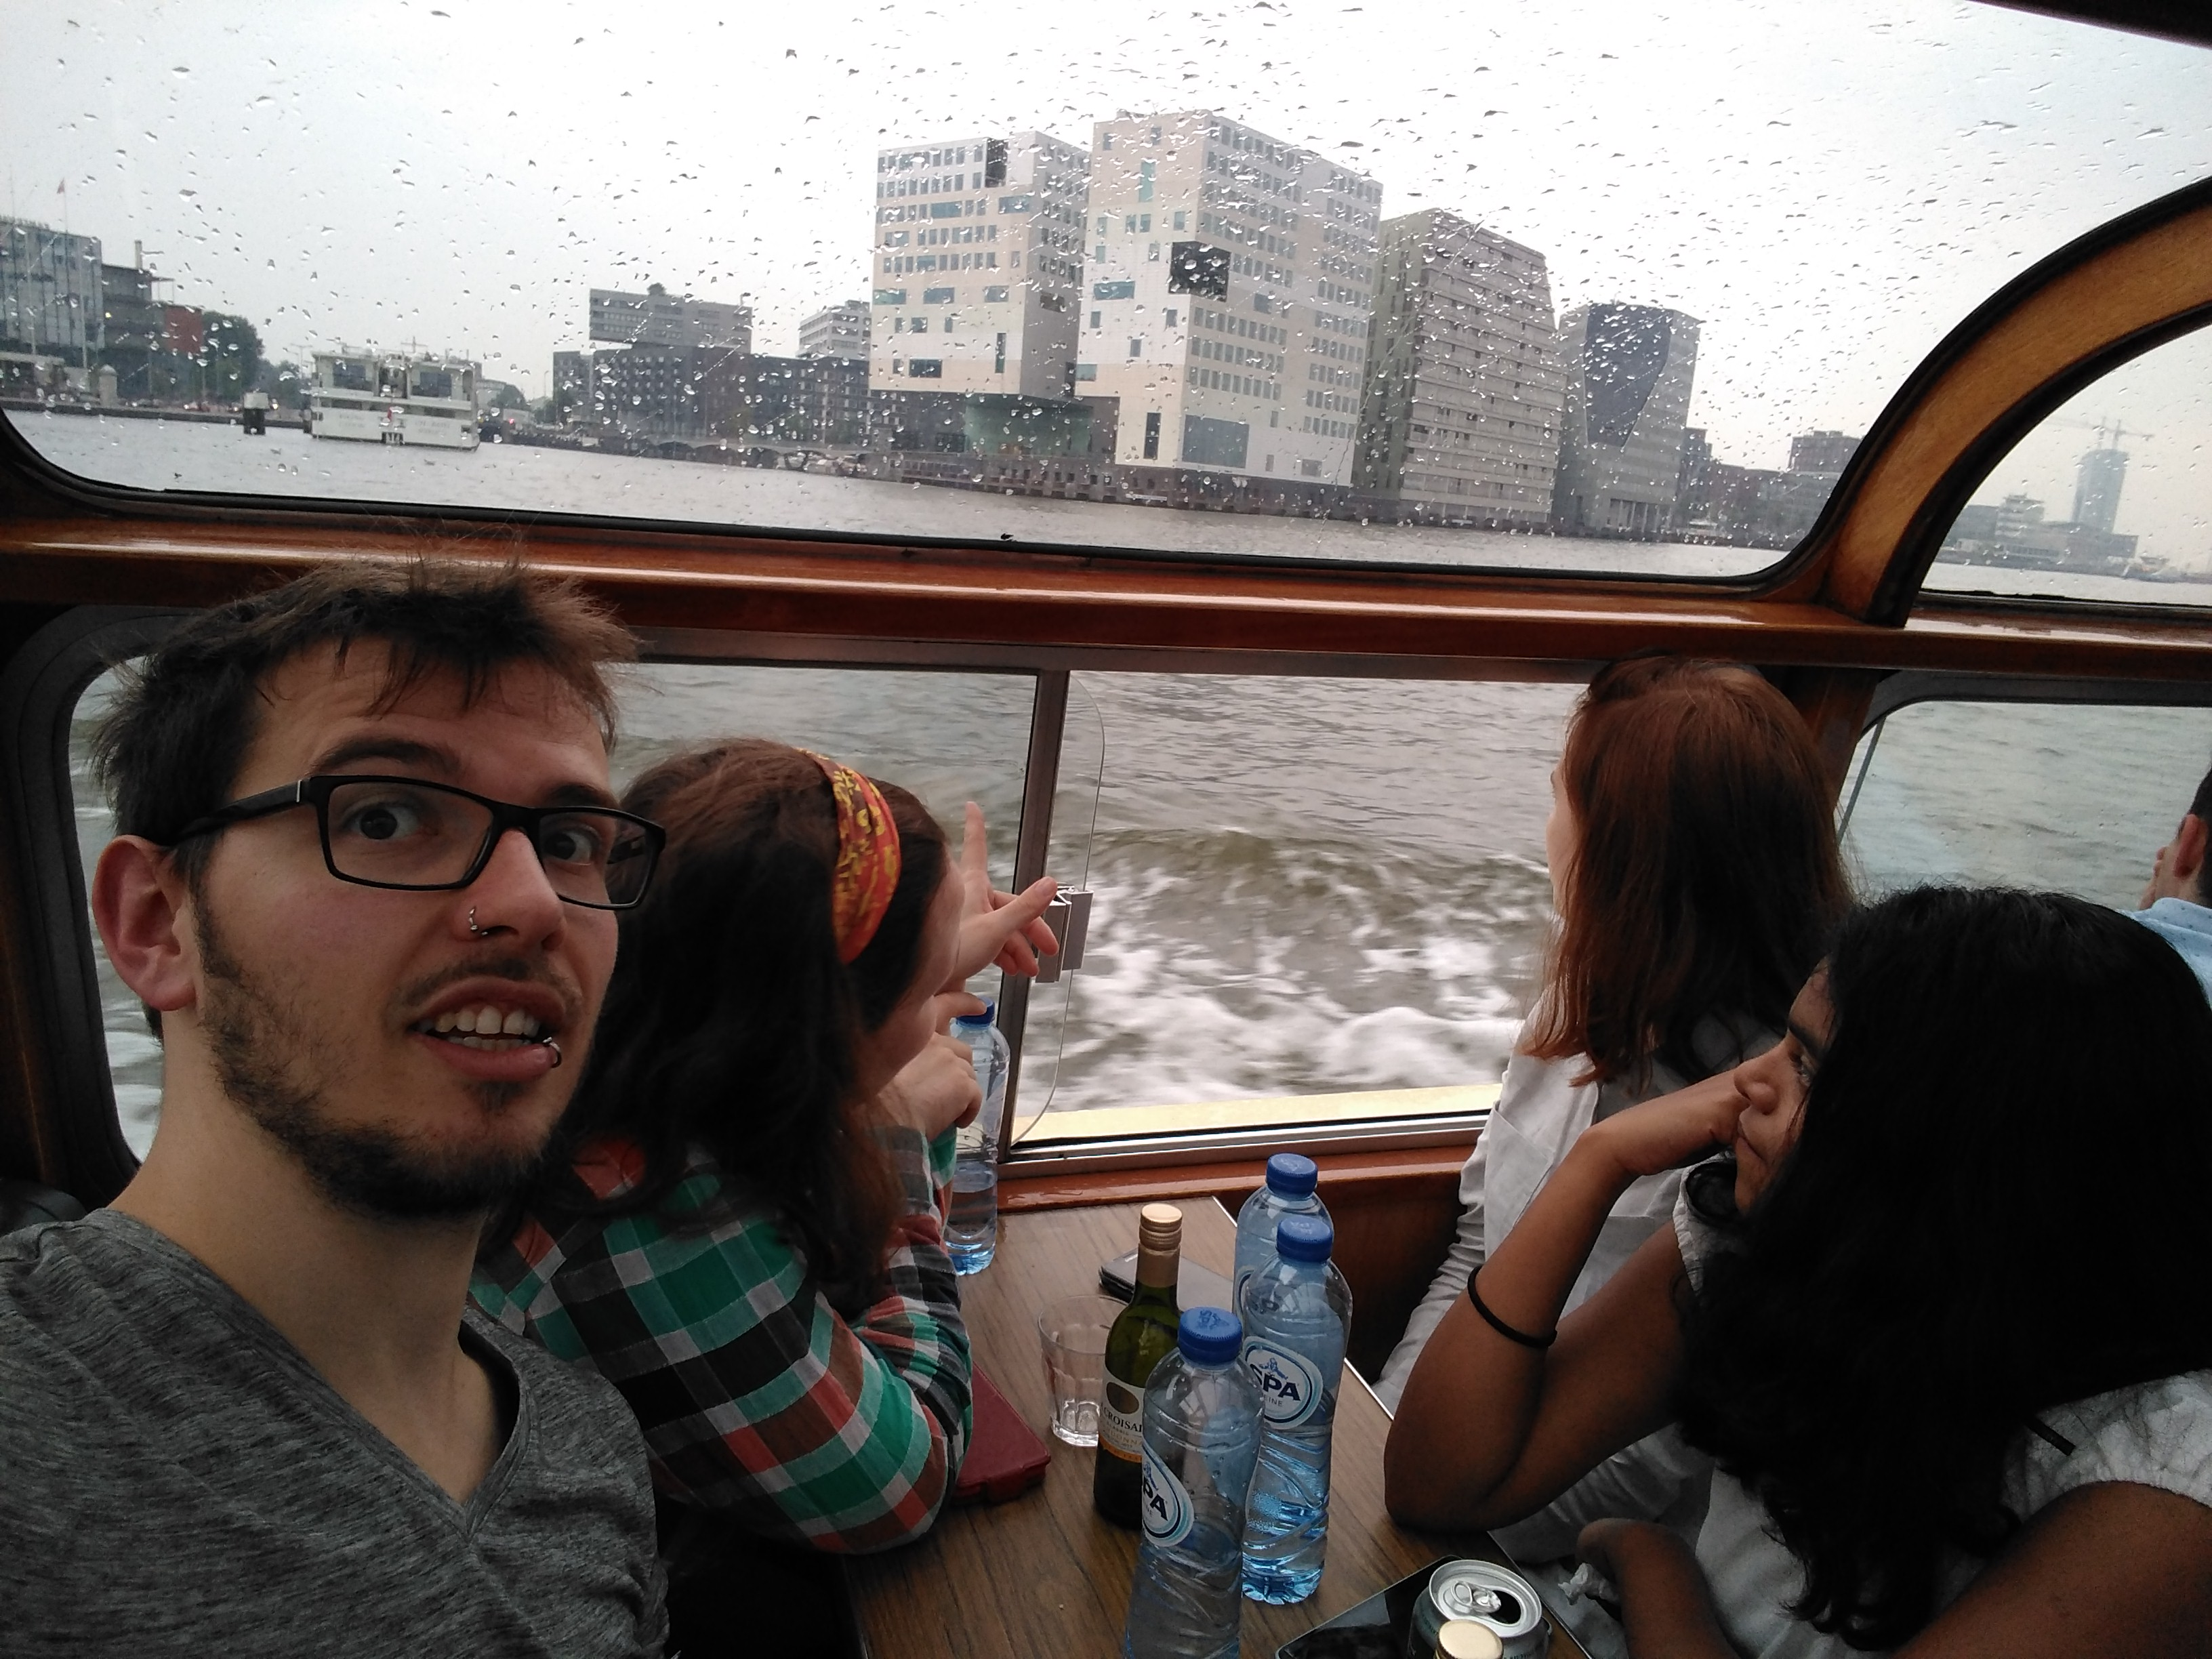 Selfie made during the boat tour through the canals of Amsterdam